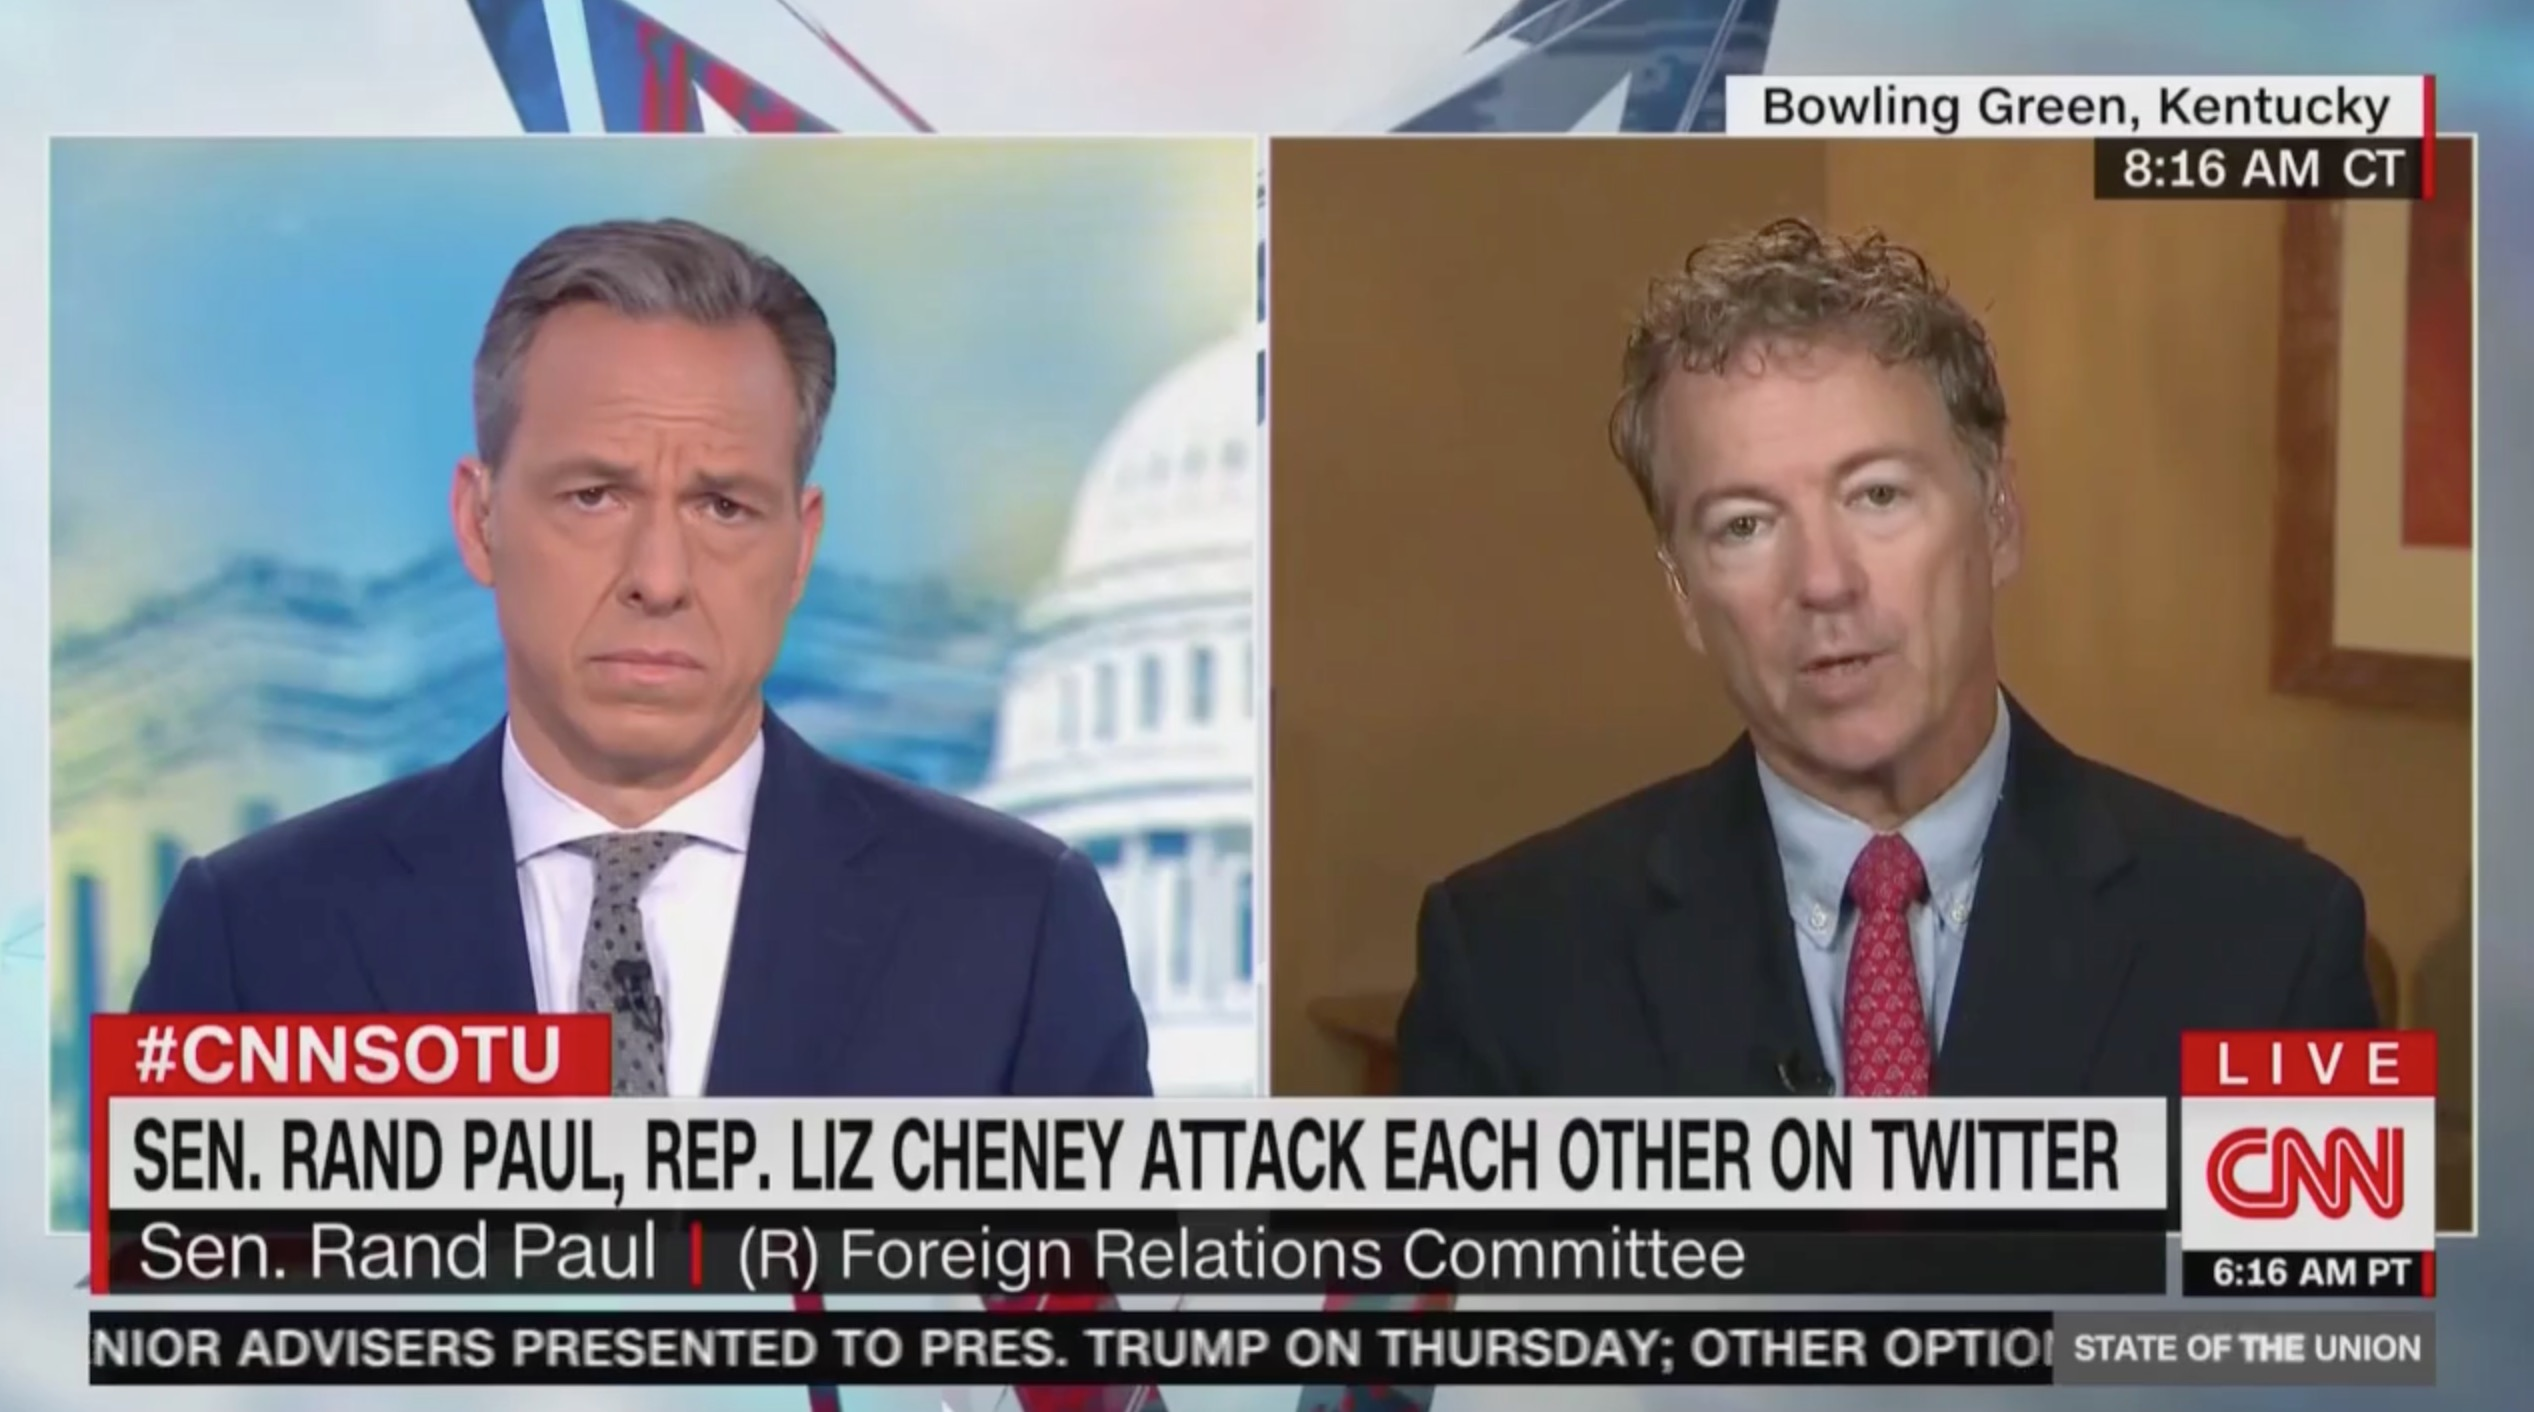 Rand Paul Trashes Liz Cheney After Twitter Spat: She and Bolton 'Don't Get It'